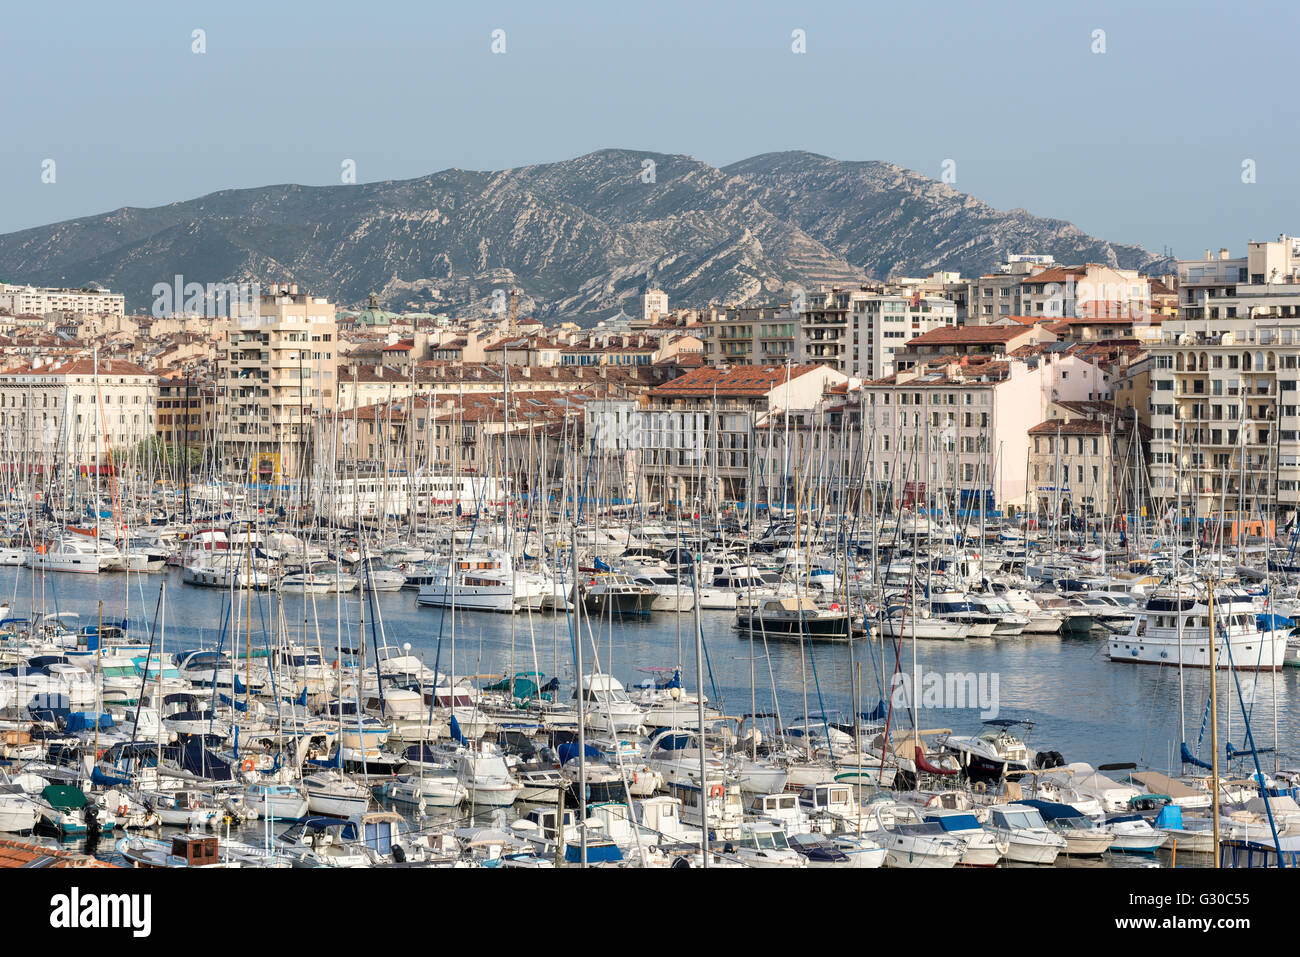 The old port of Marseille (Vieux Port) in Marseille, Bouches-du-Rhone, Provence, France, Mediterranean, Europe - Stock Image